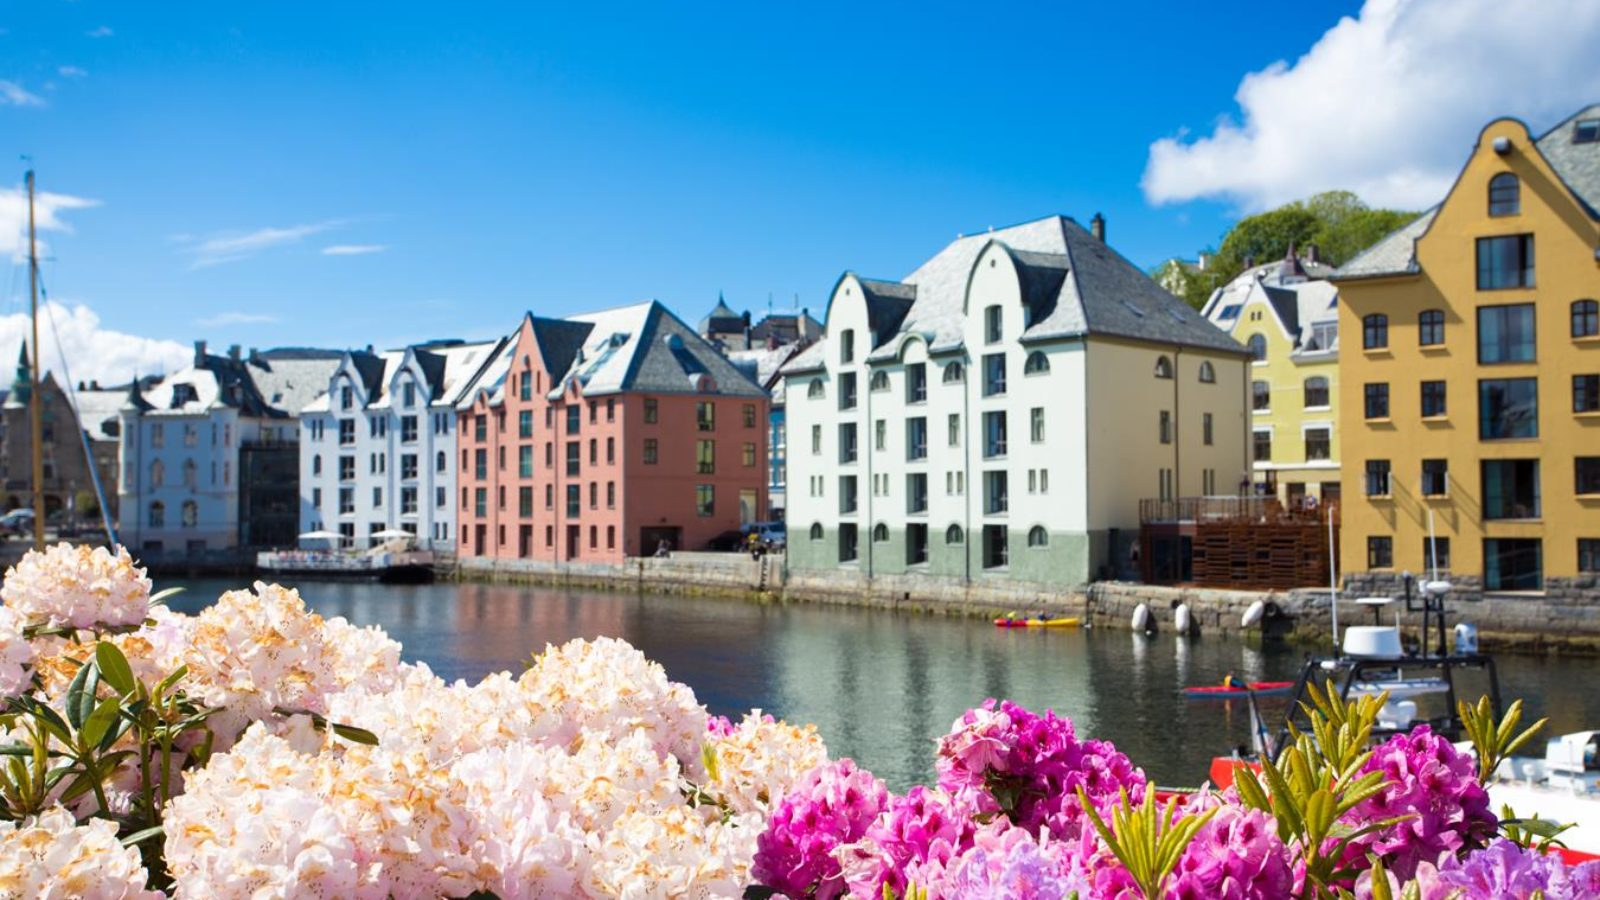 flowers growing at the streets of famous norwegian town Alesund